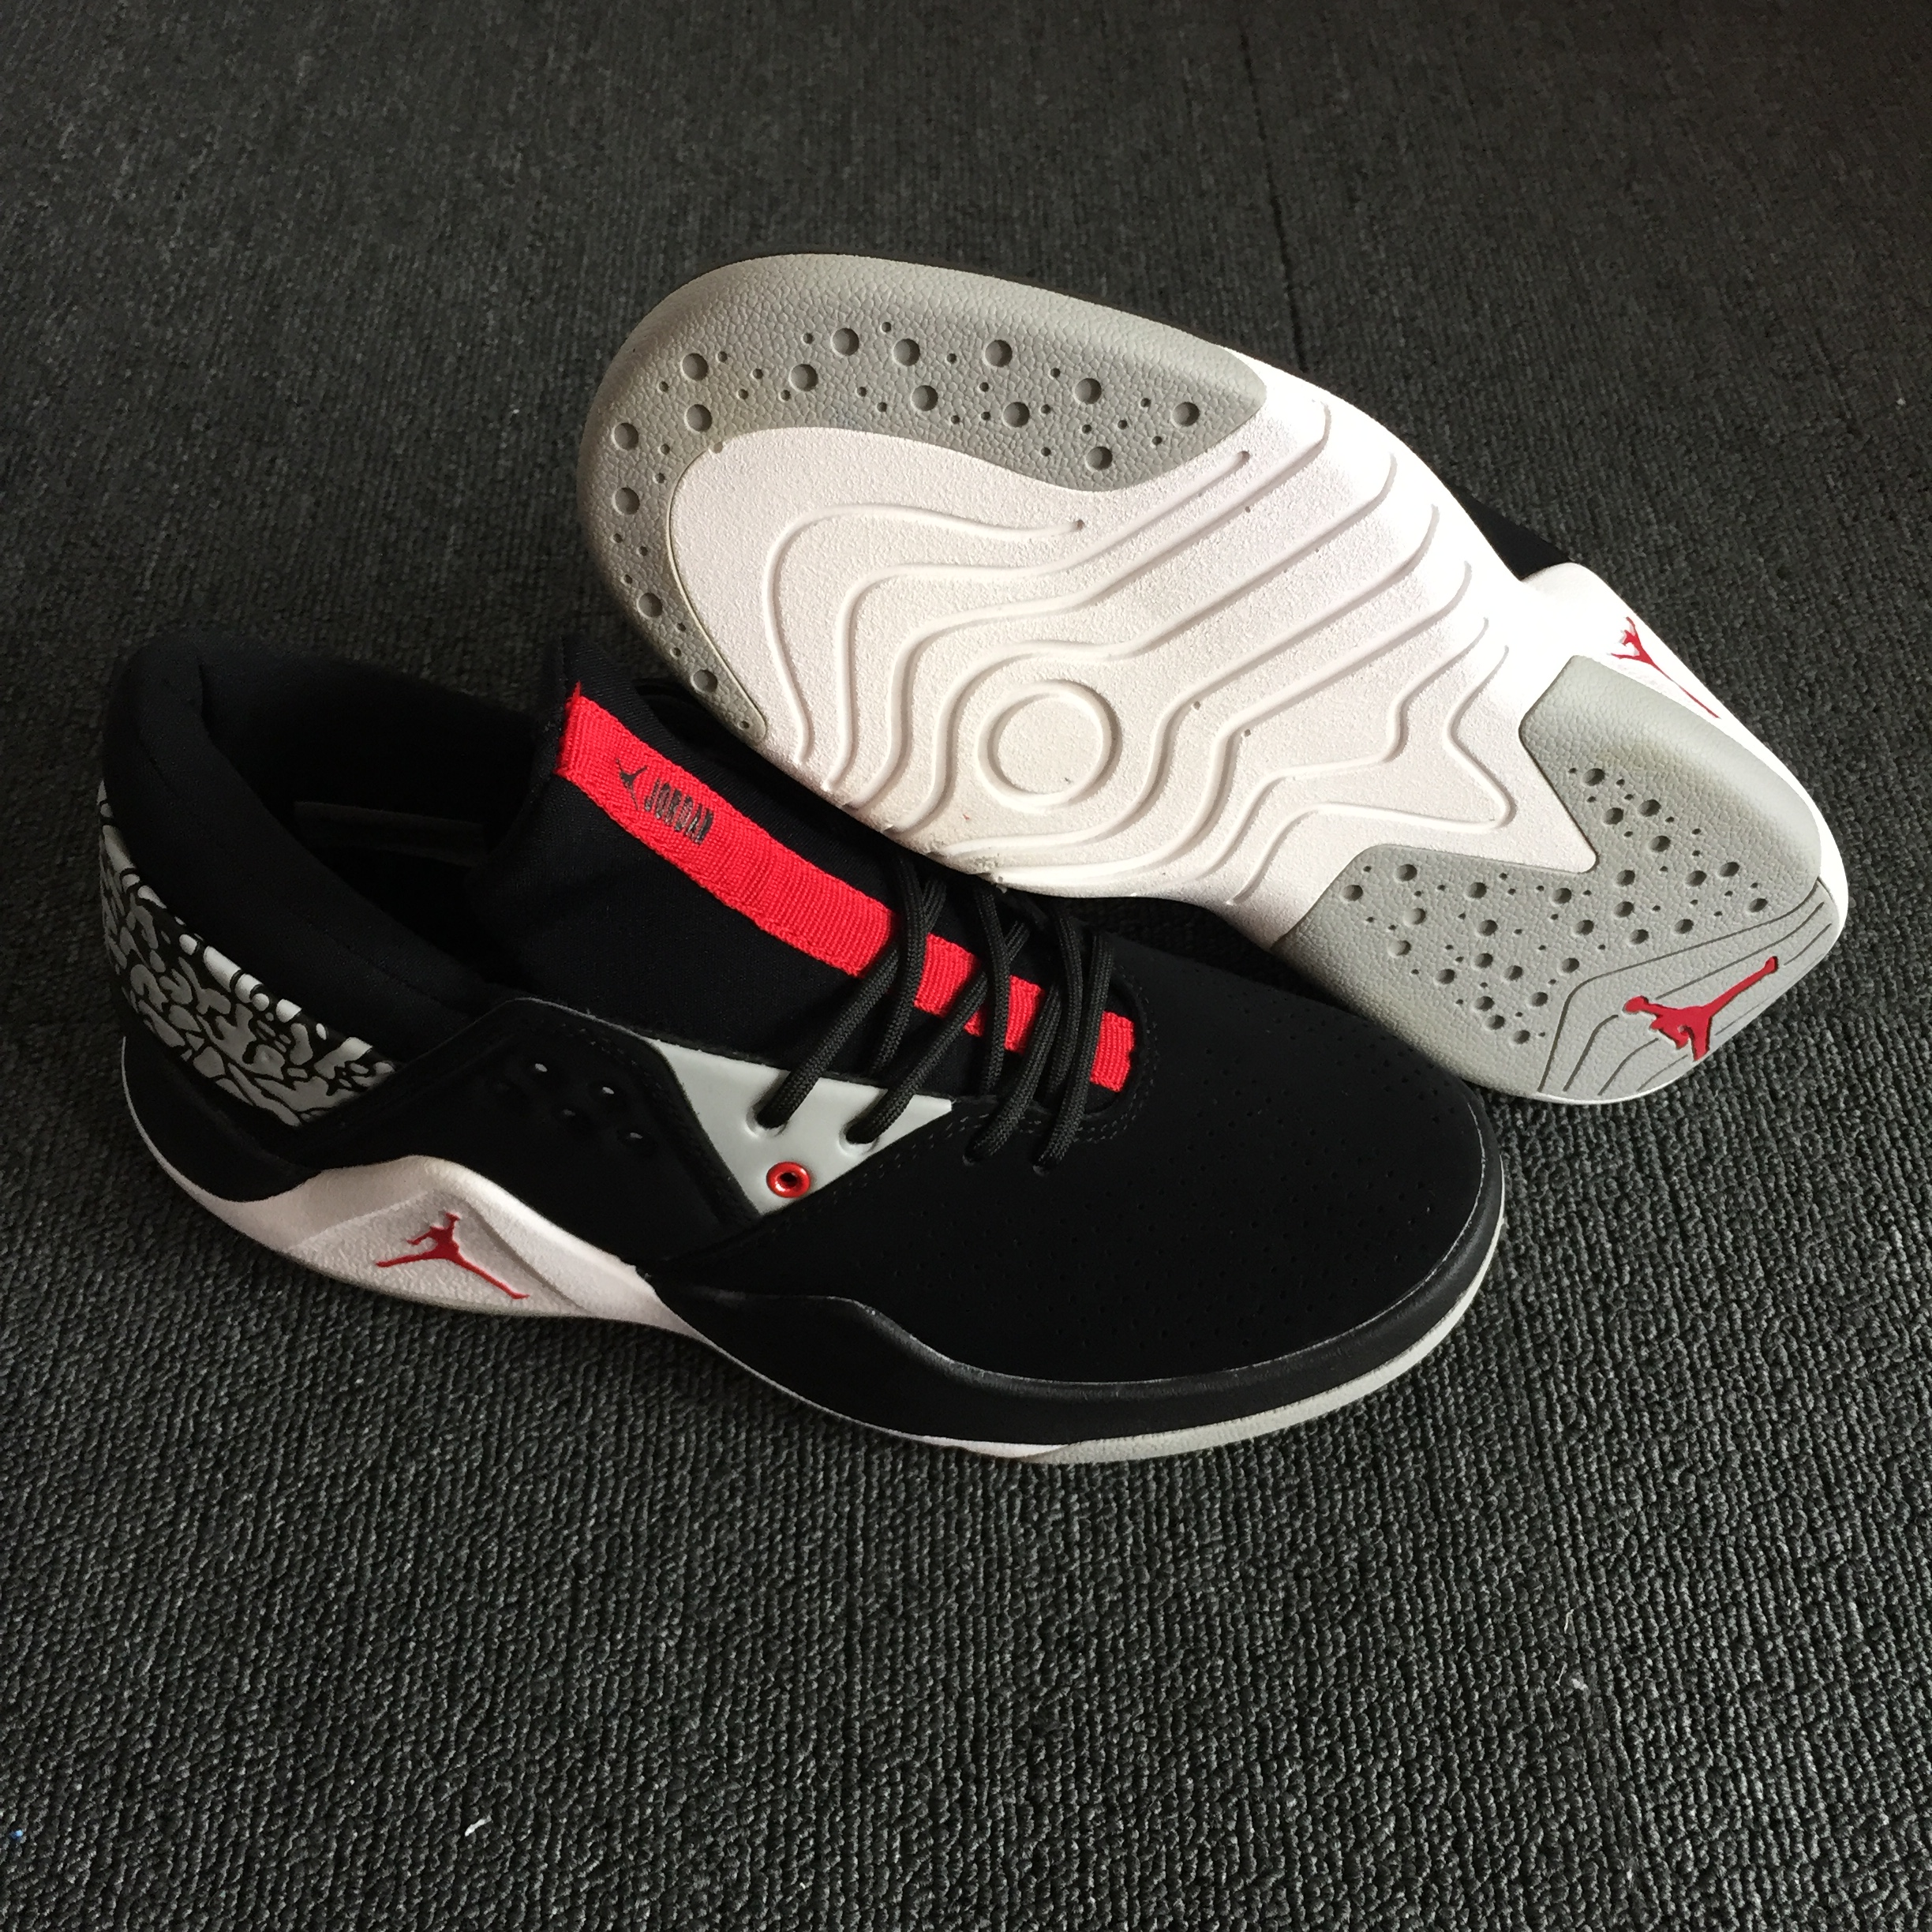 Original Air Jordan Flight Fresh Black White Red Shoes